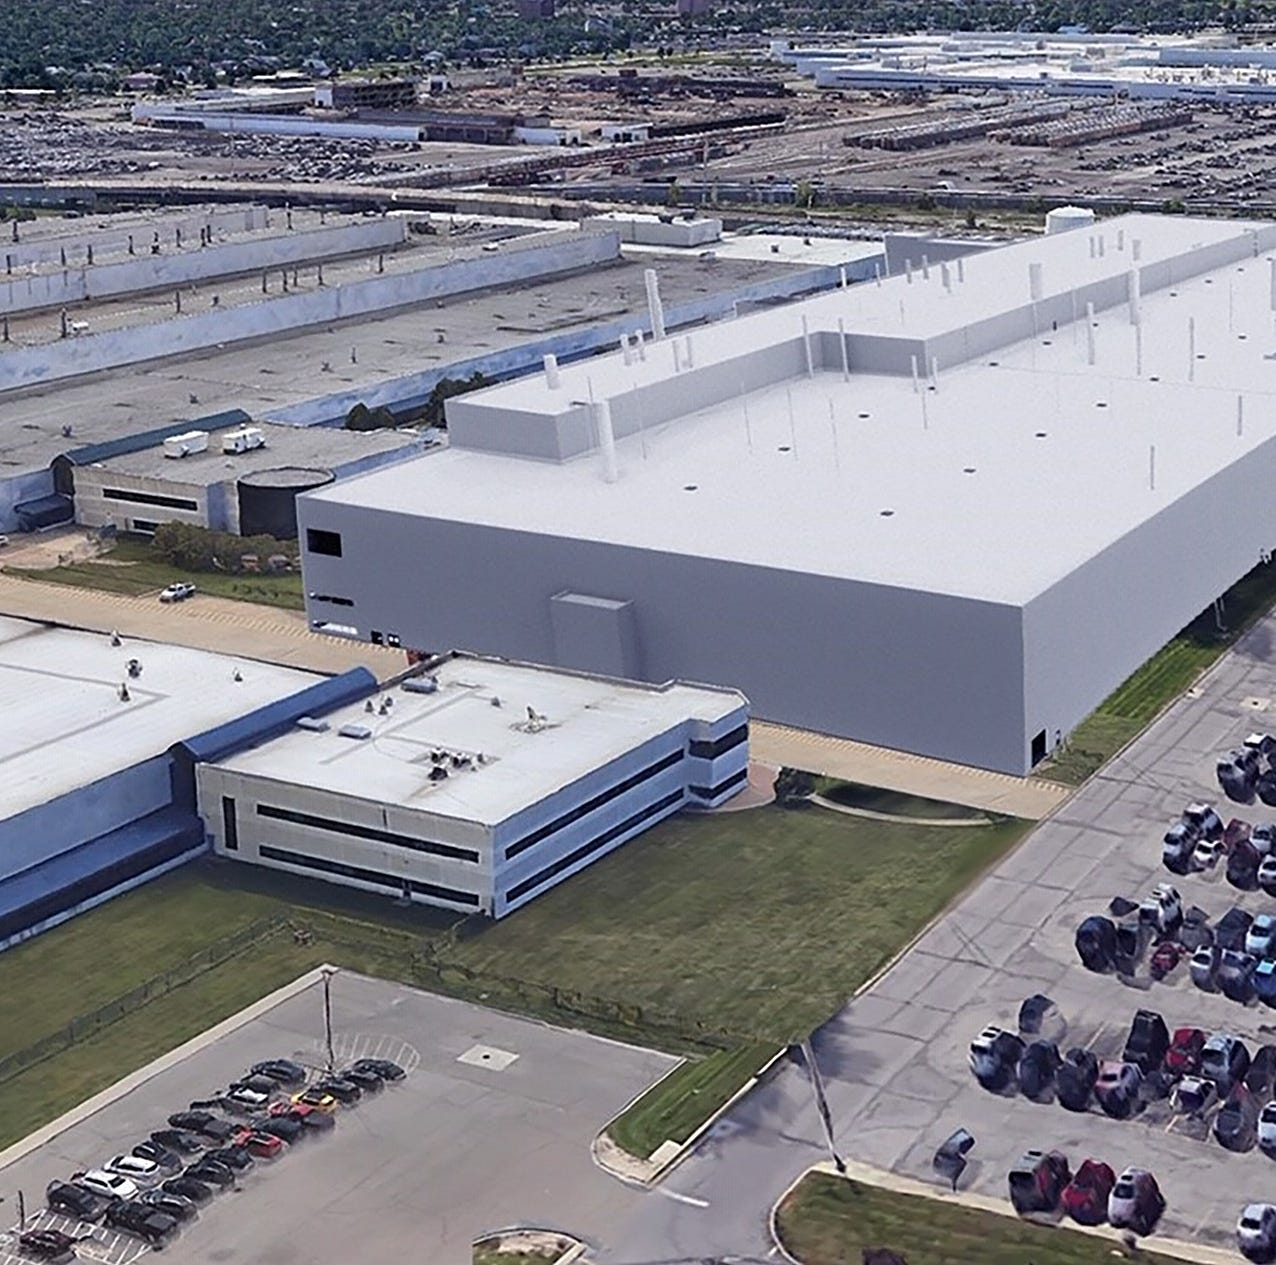 It's understandable Detroiters are skeptical about new Jeep plant